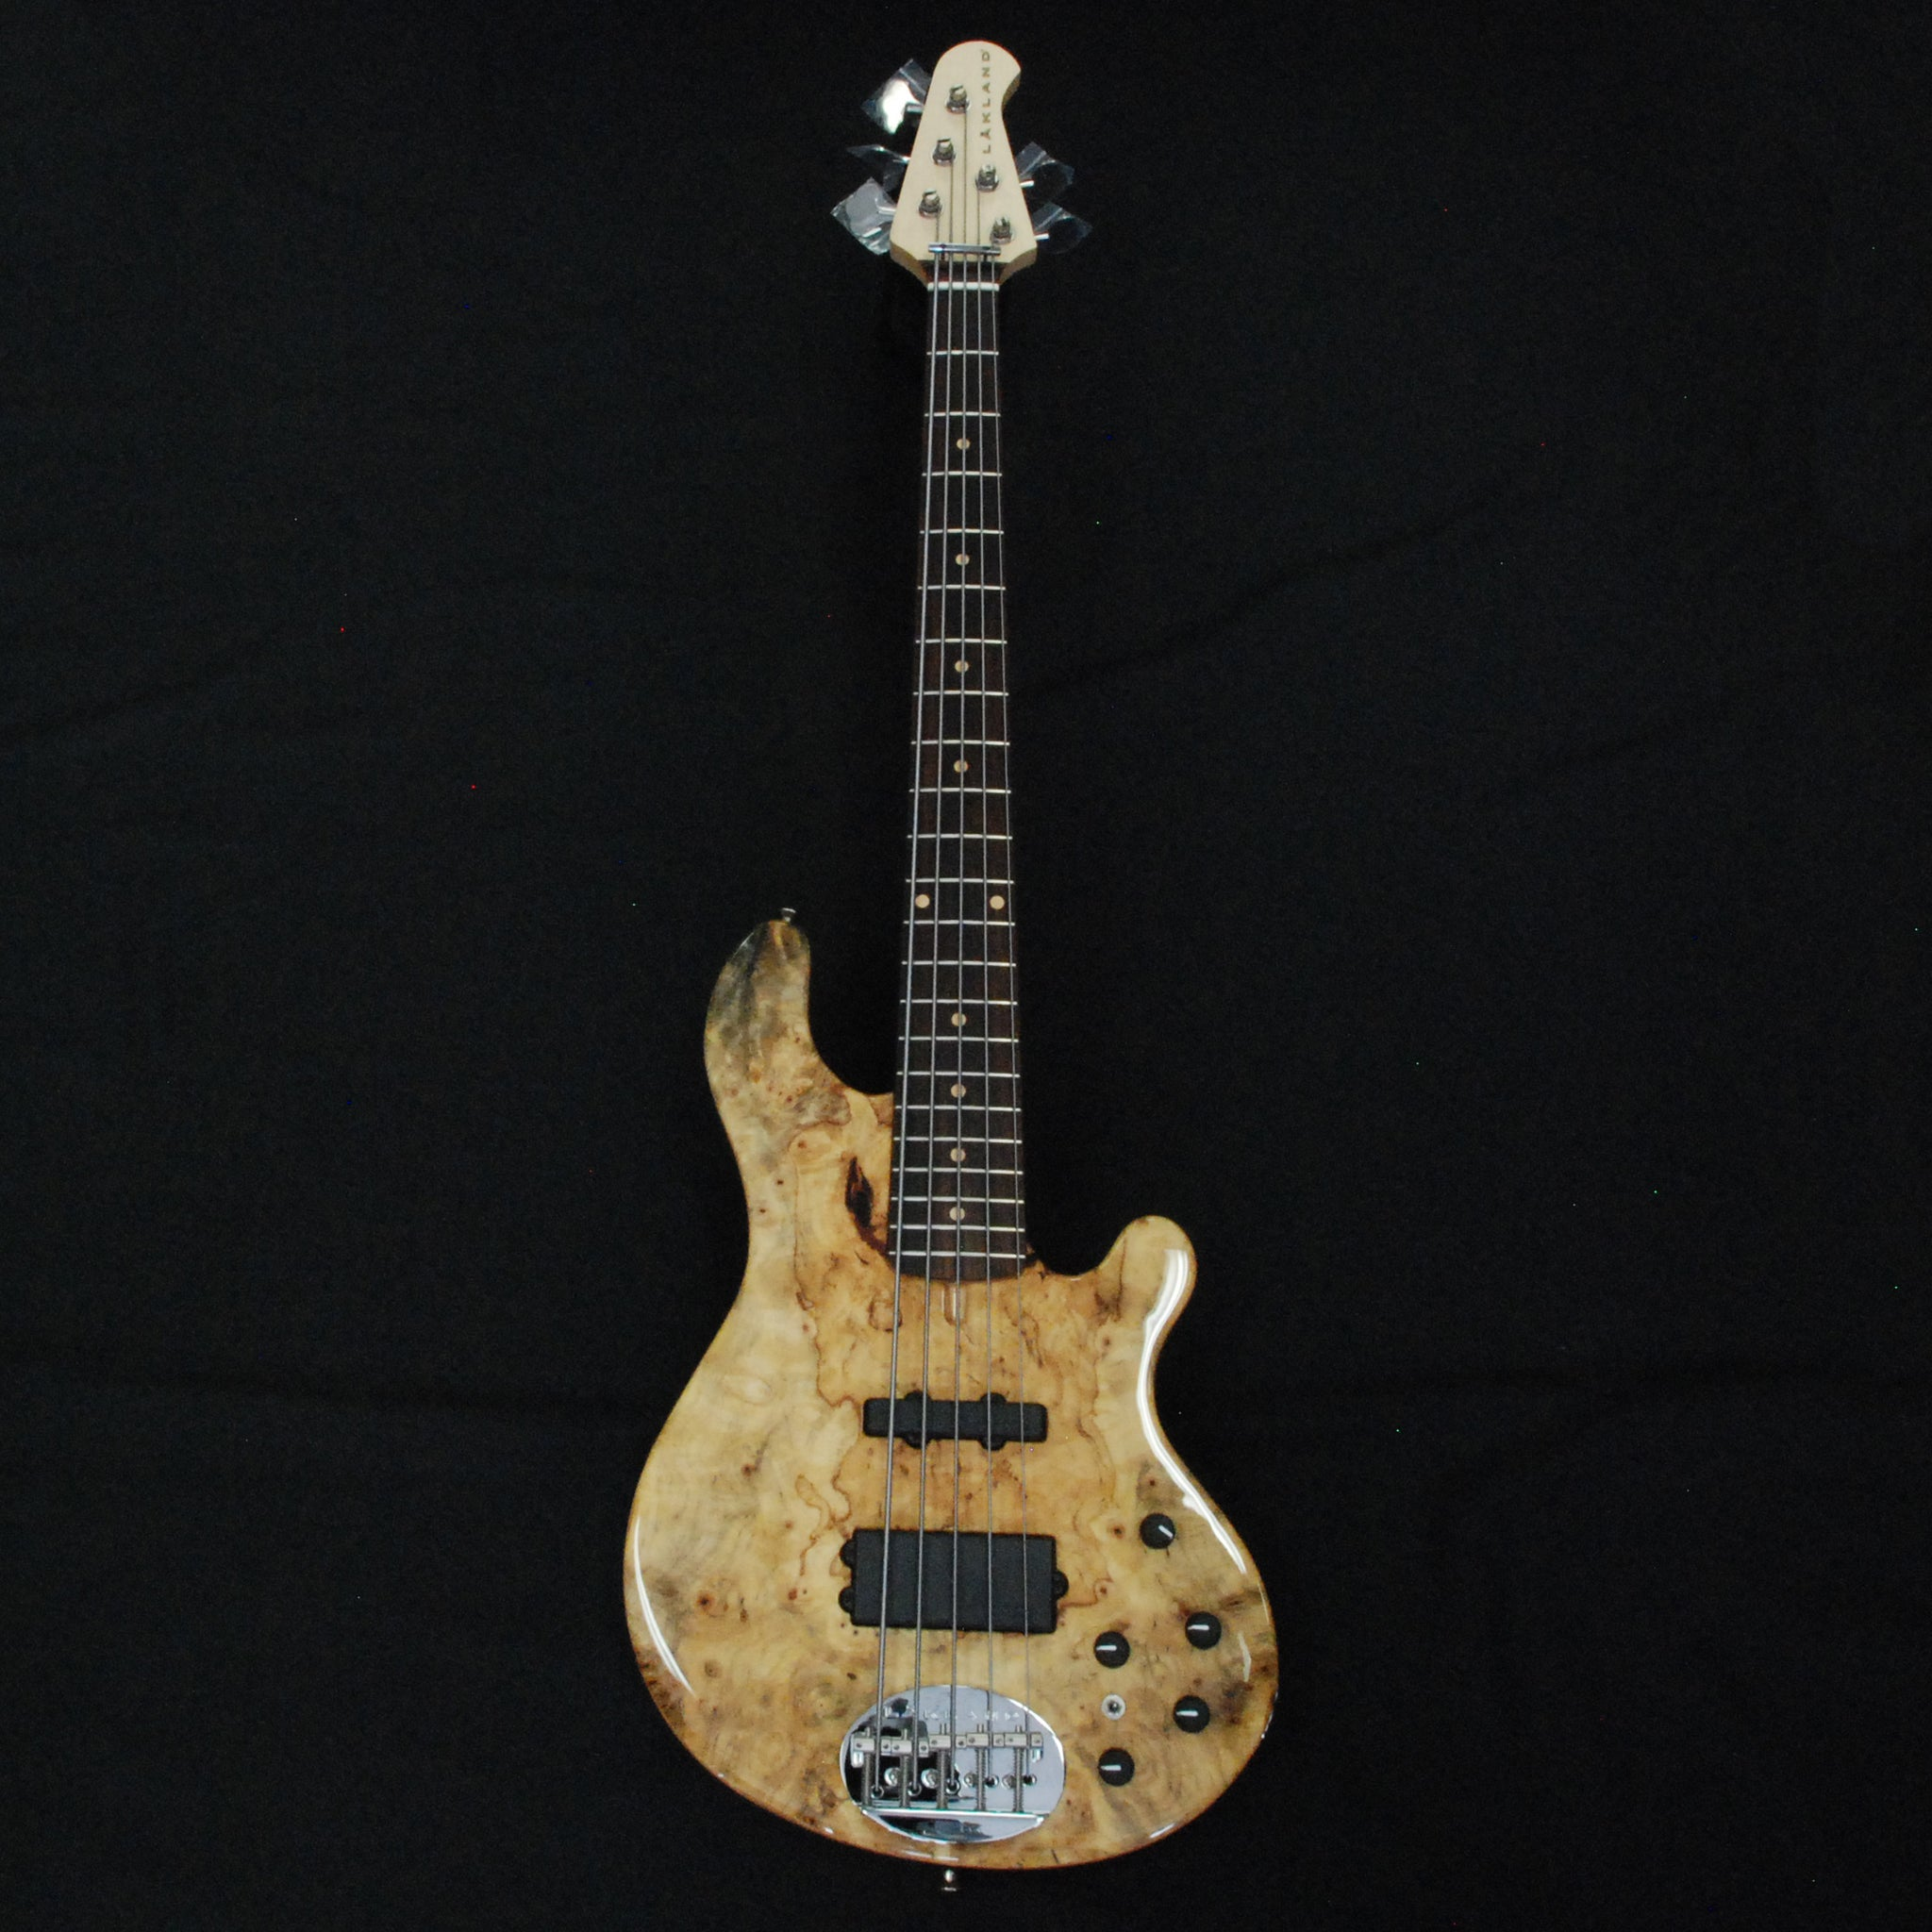 Shop online for Lakland USA Series 55-94 Deluxe Buckeye Burl Maple 5 String Electric Bass Guitar [7808] today.  Now available for purchase from Midlothian Music of Orland Park, Illinois, USA